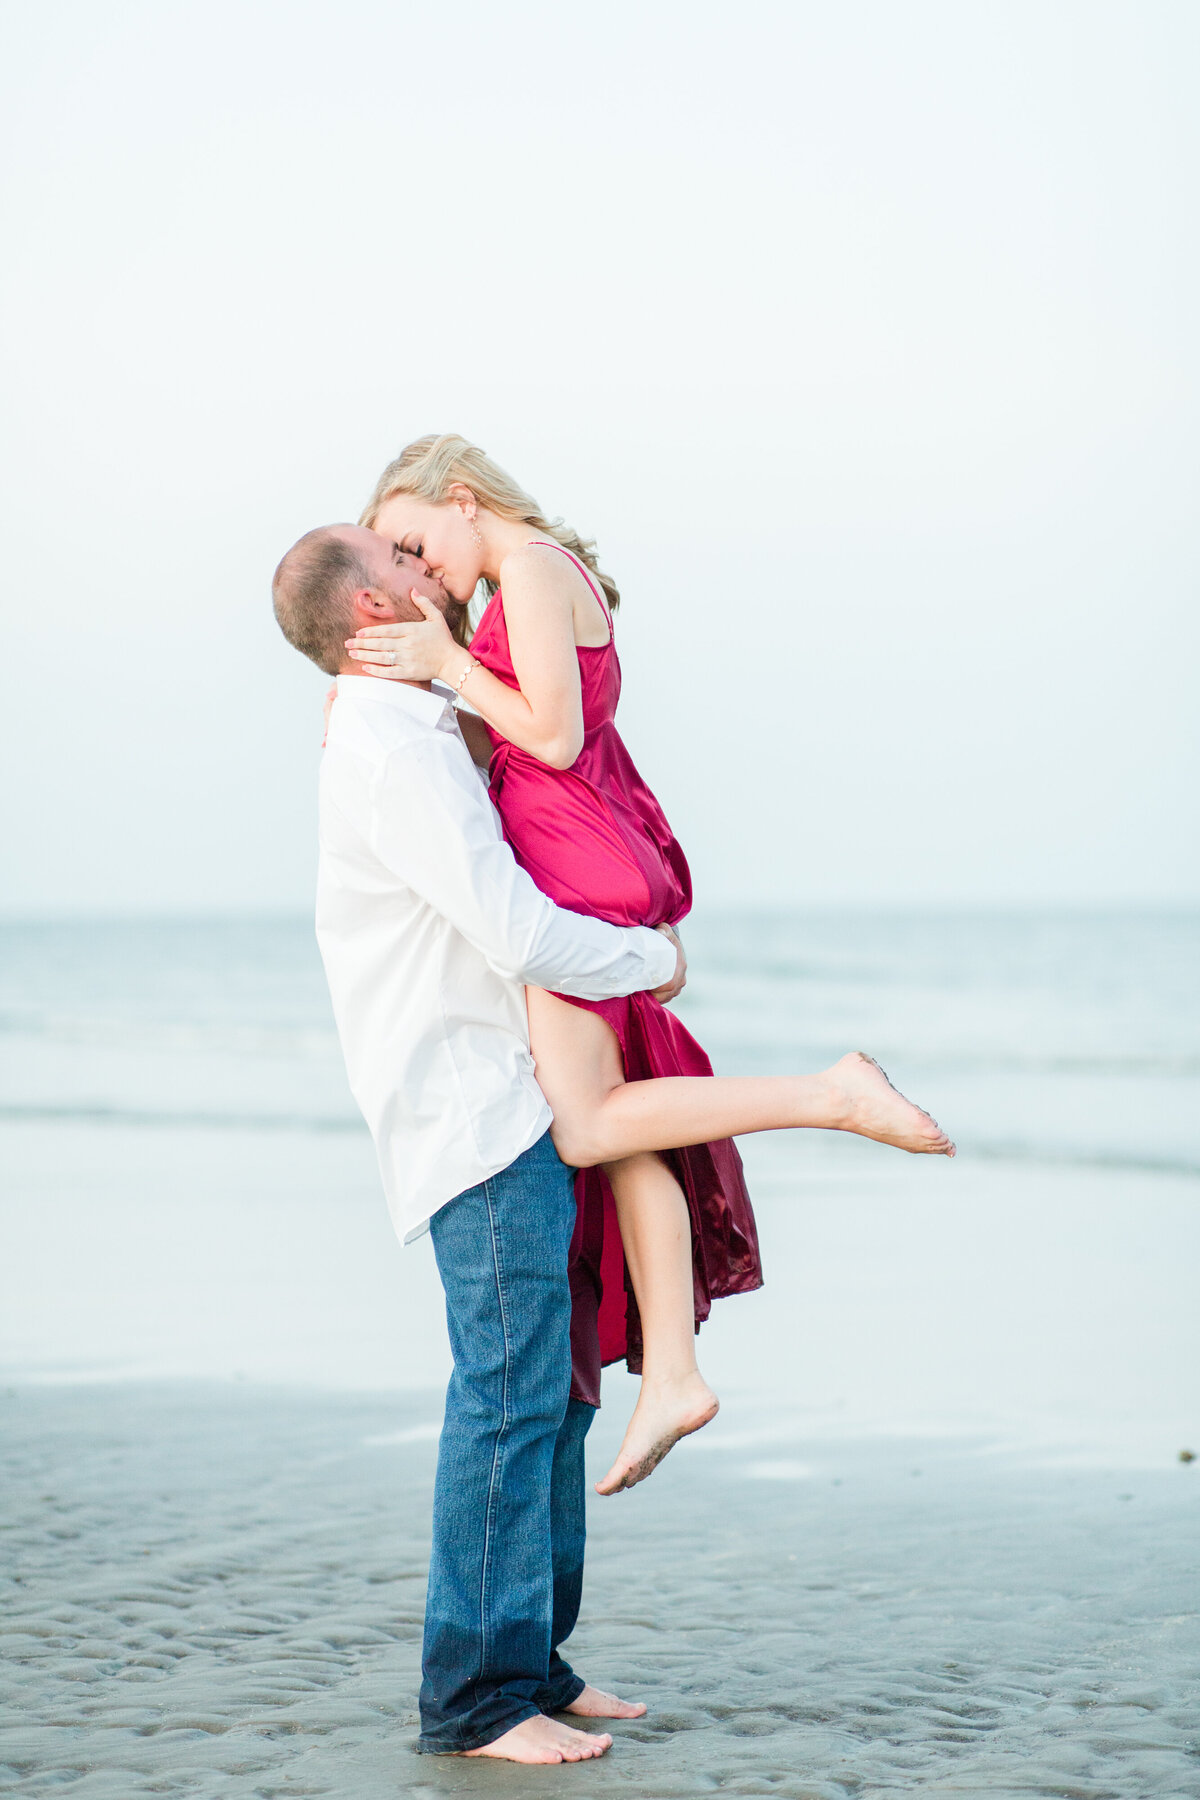 Renee Lorio Photography South Louisiana Wedding Engagement Light Airy Portrait Photographer Photos Southern Clean Colorful16444